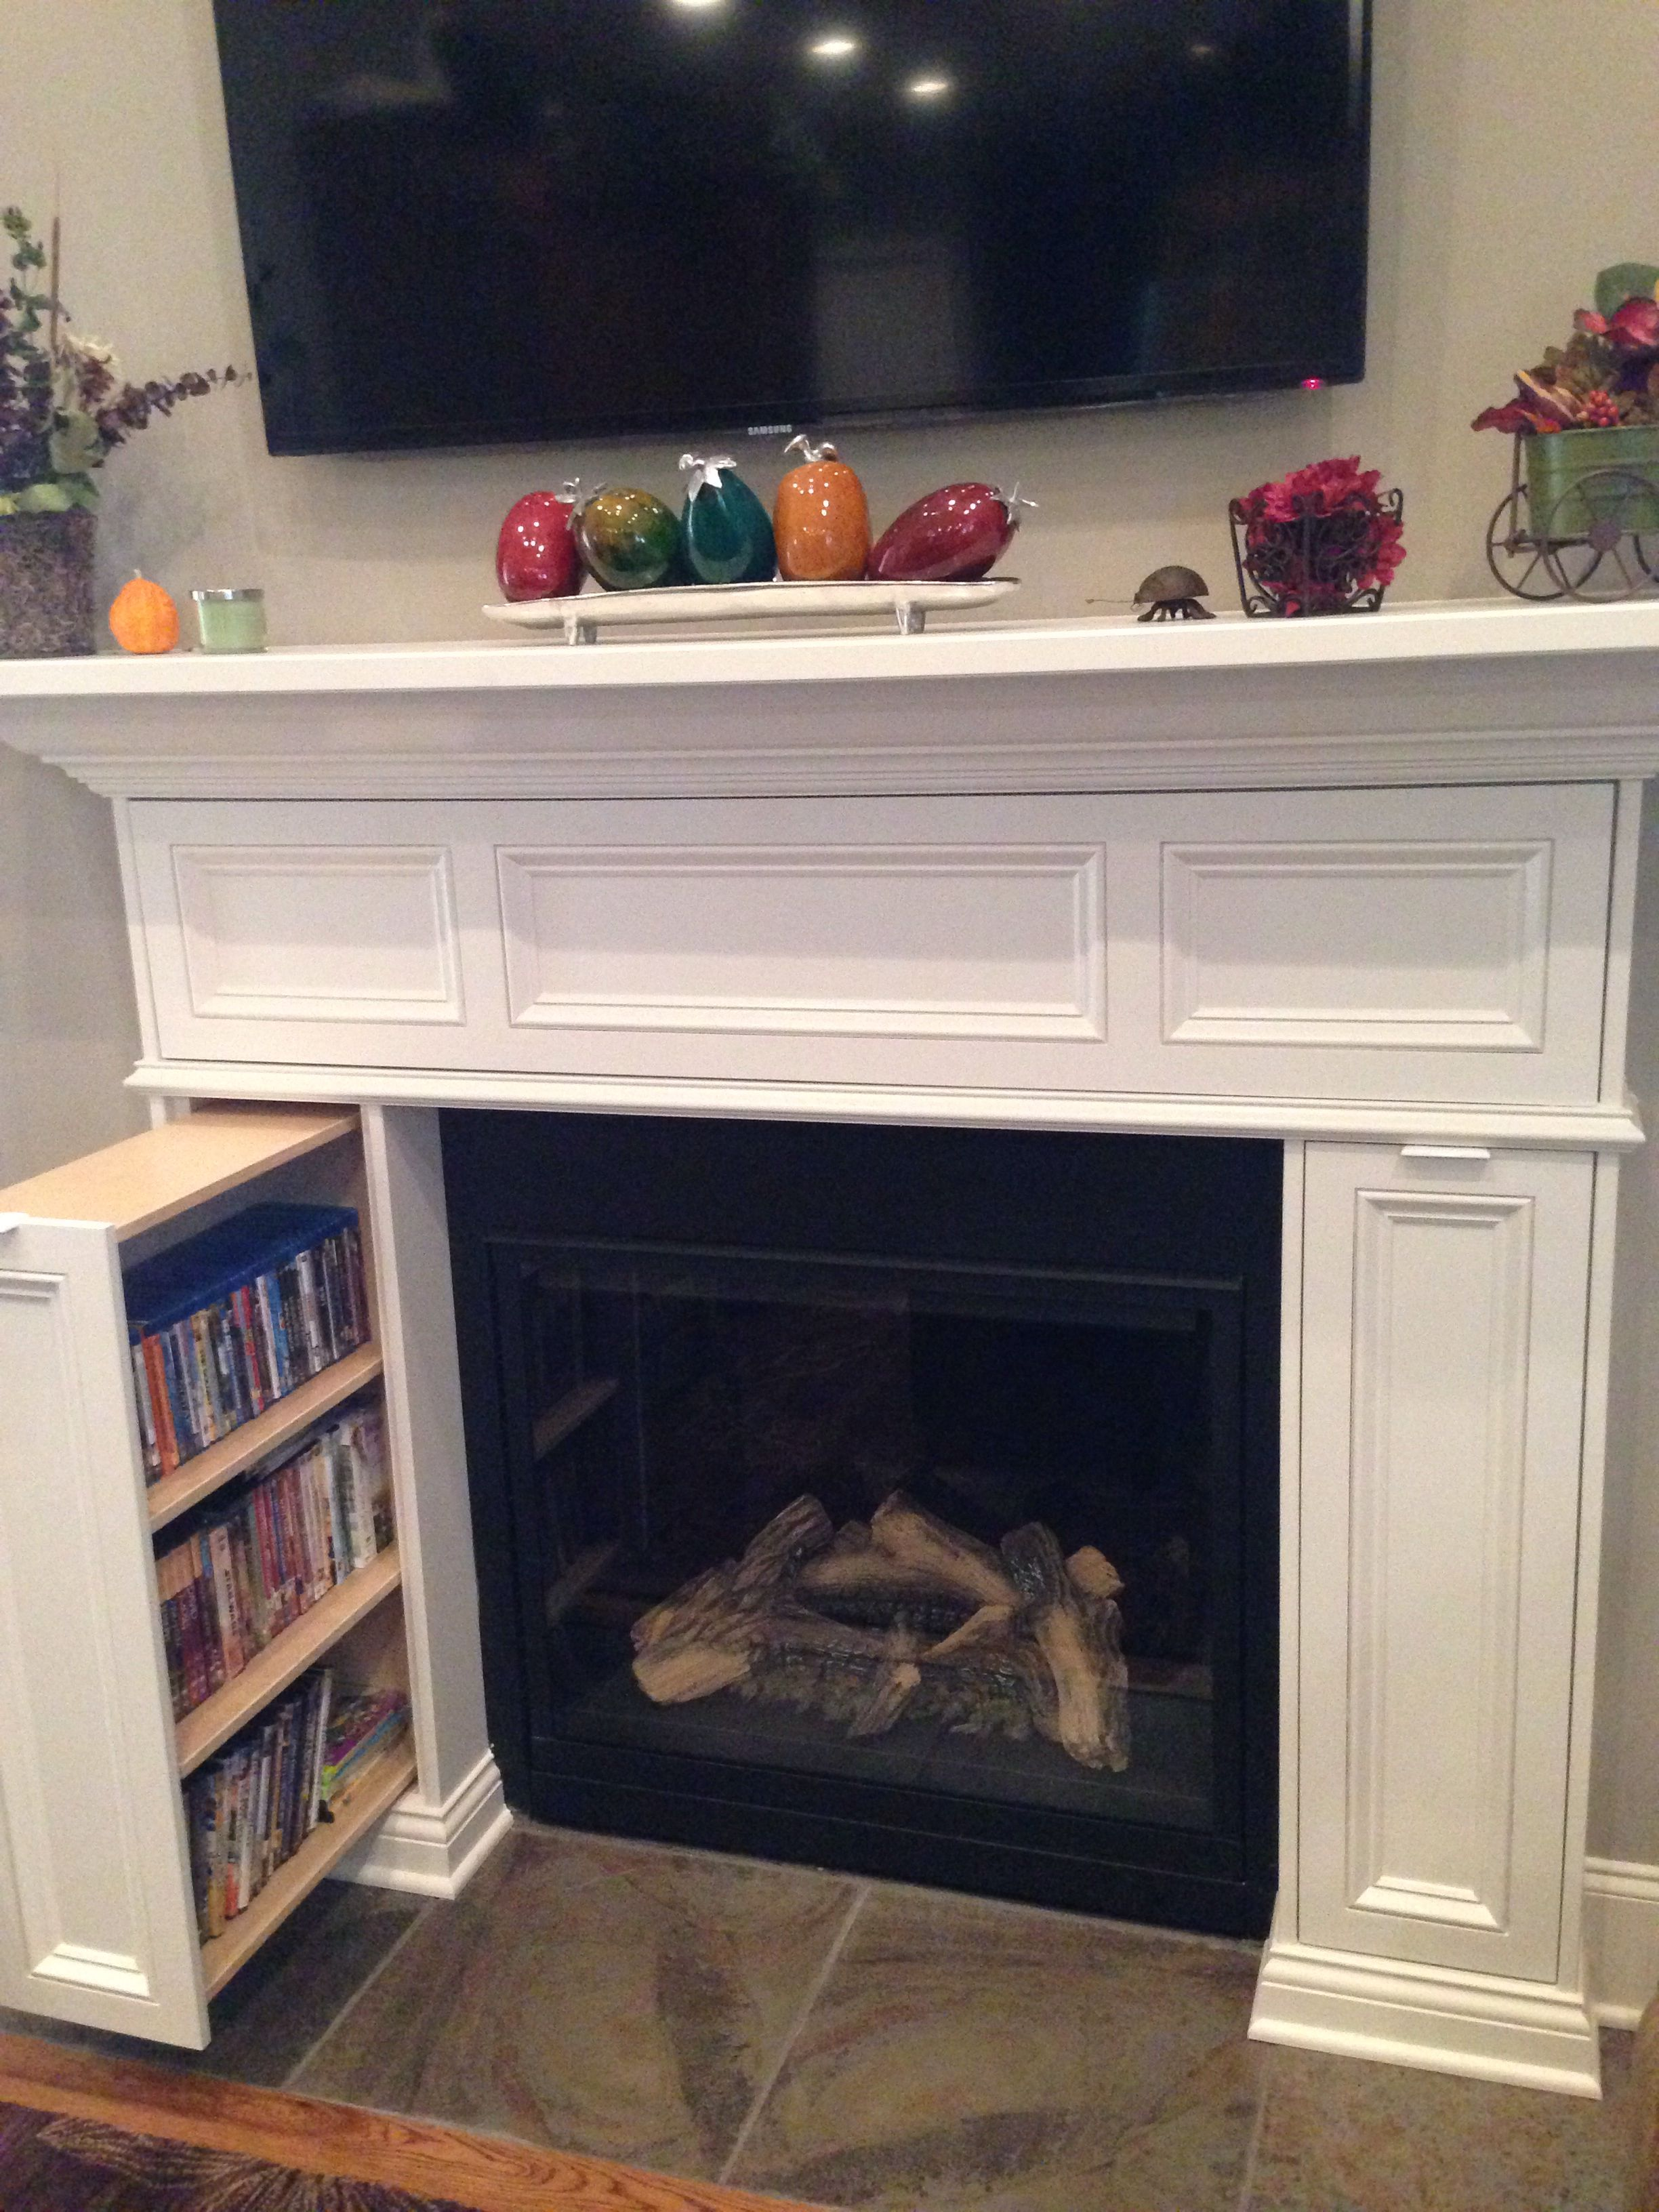 Dvd Storage In Fireplace Surround Dvdstorage Home Ideas